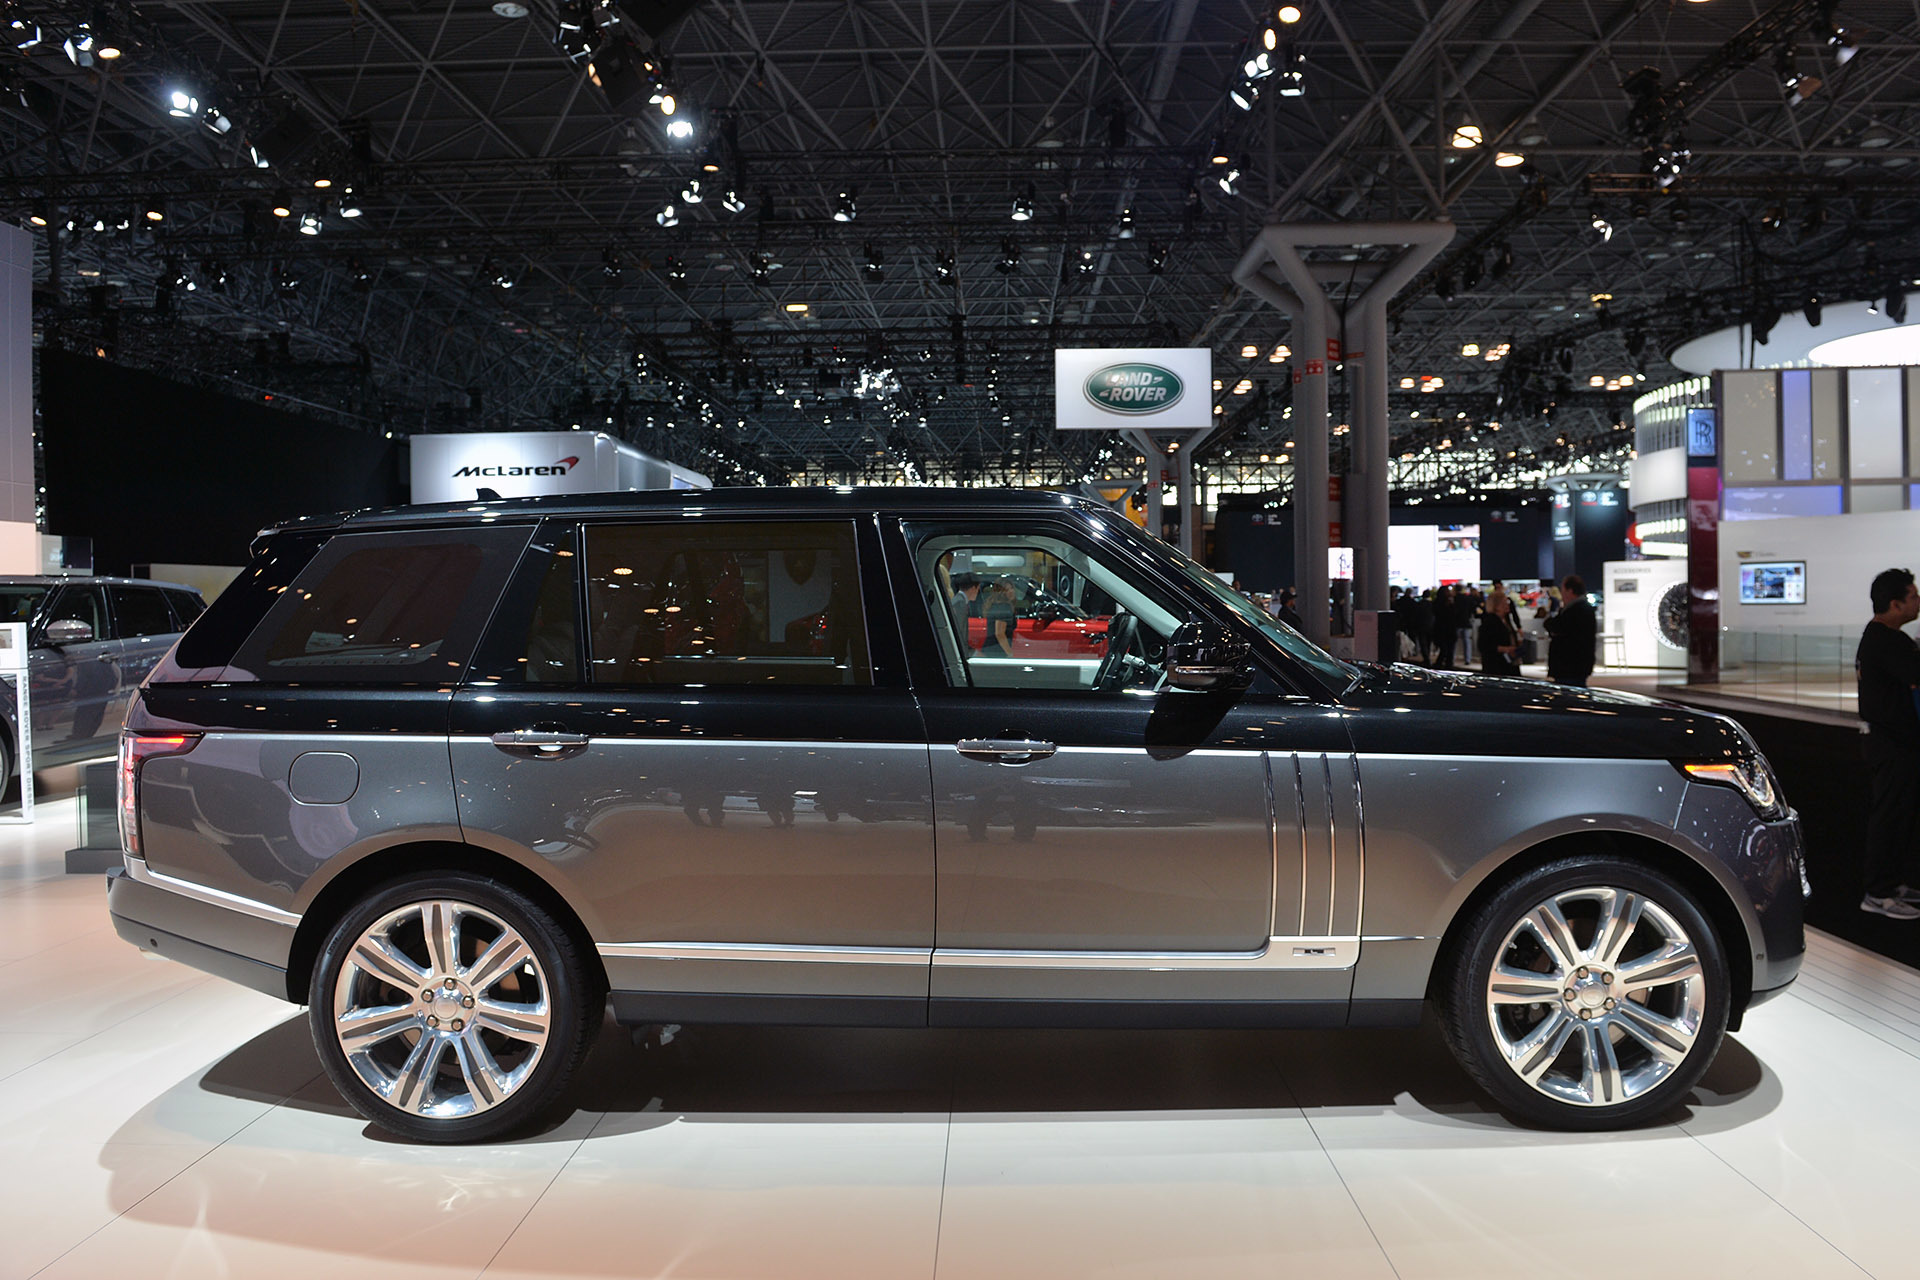 2017 Land Rover Range Rover SV Autobiography new photo - 1